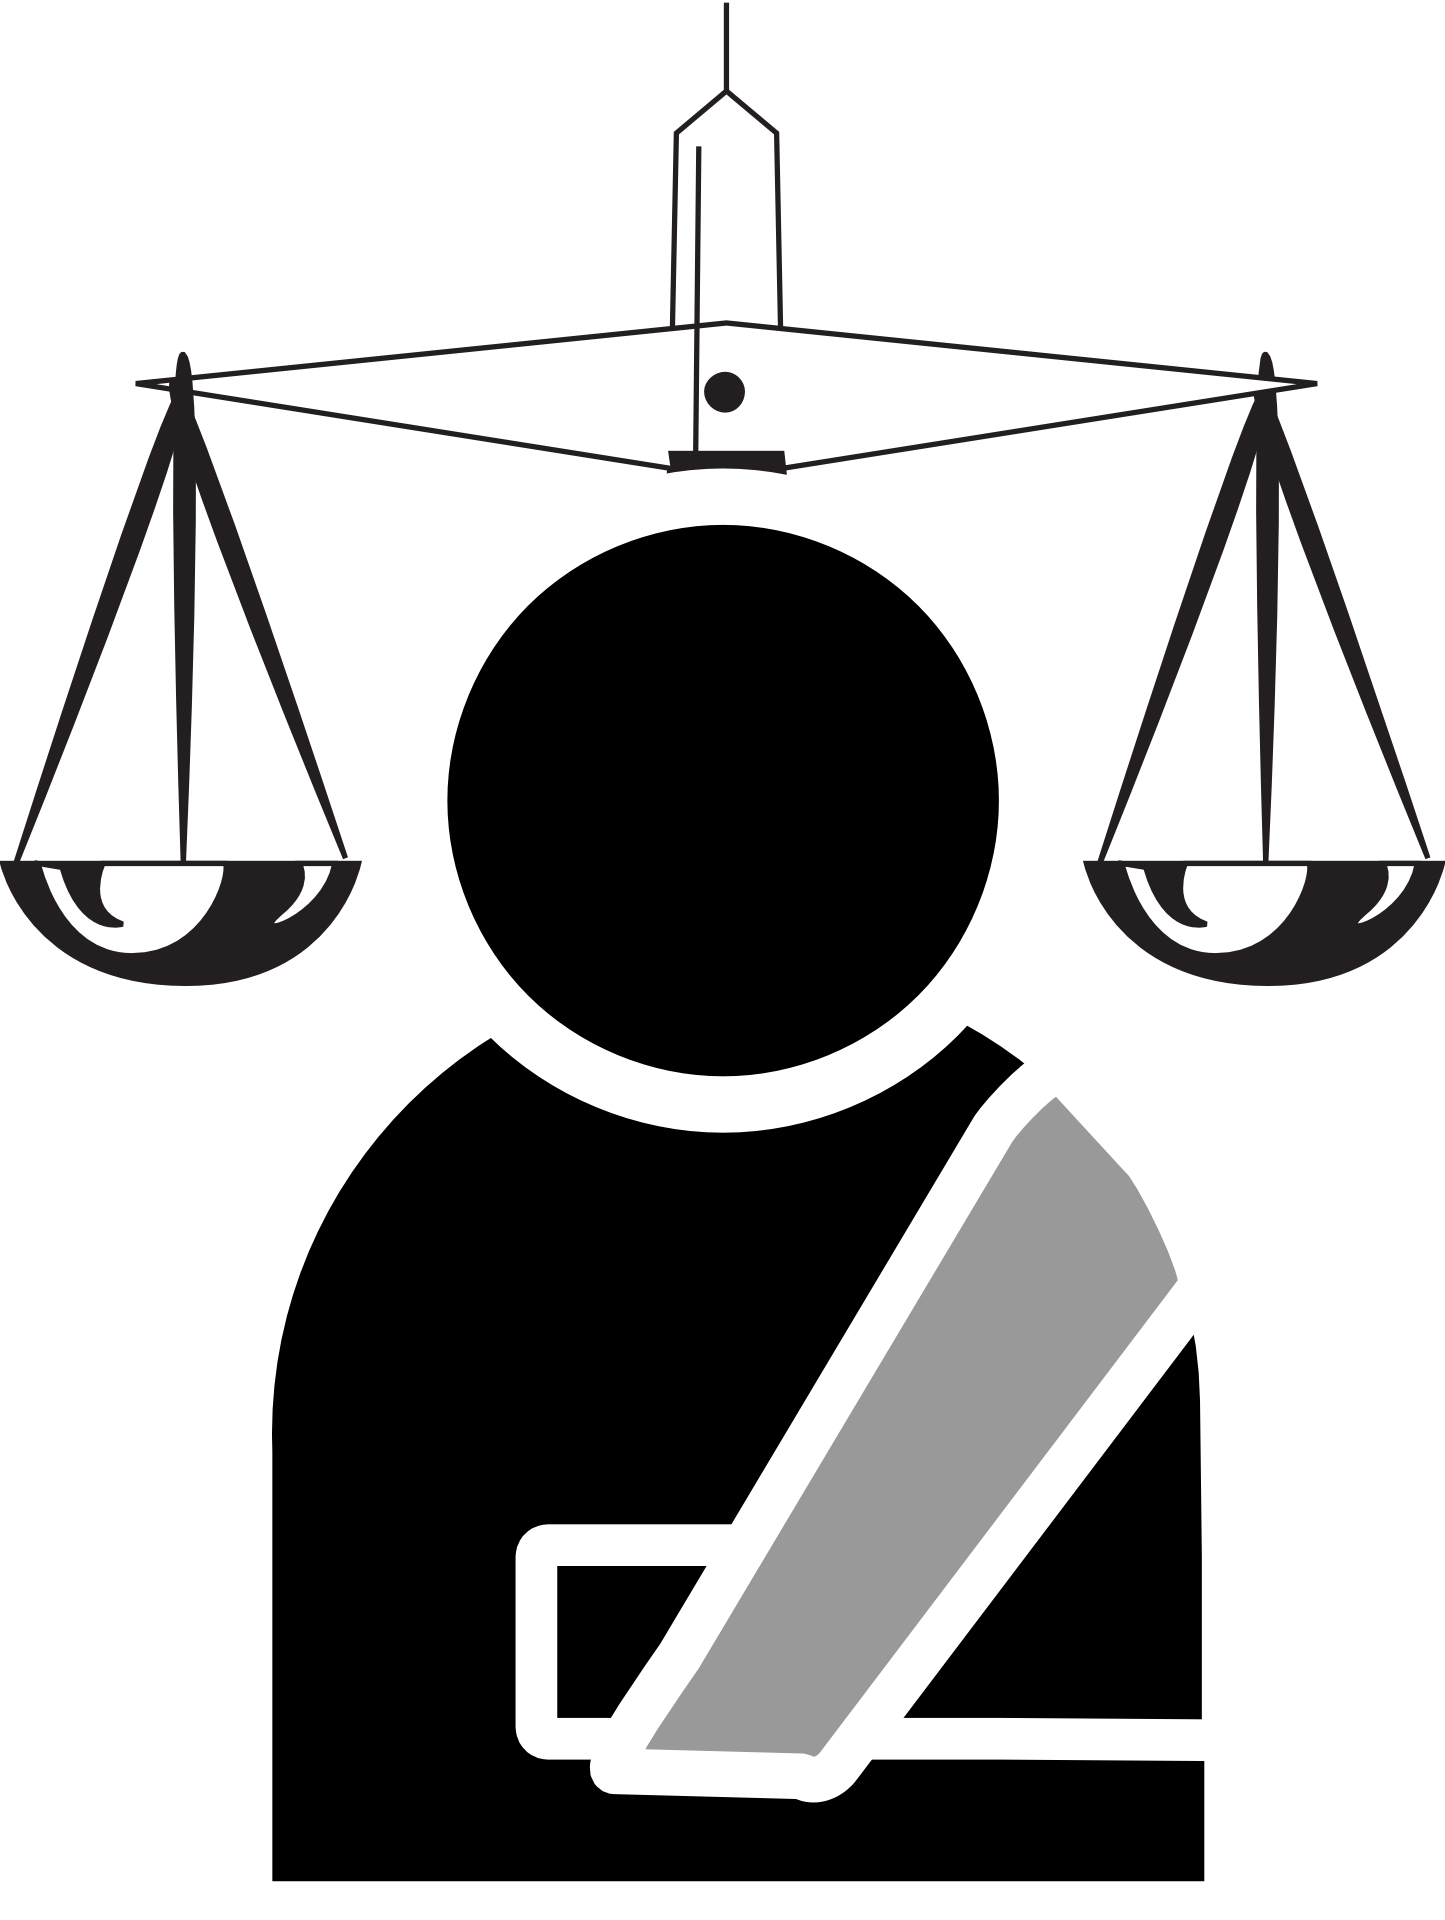 Personal injury lawyer specializations. Laws clipart legal service